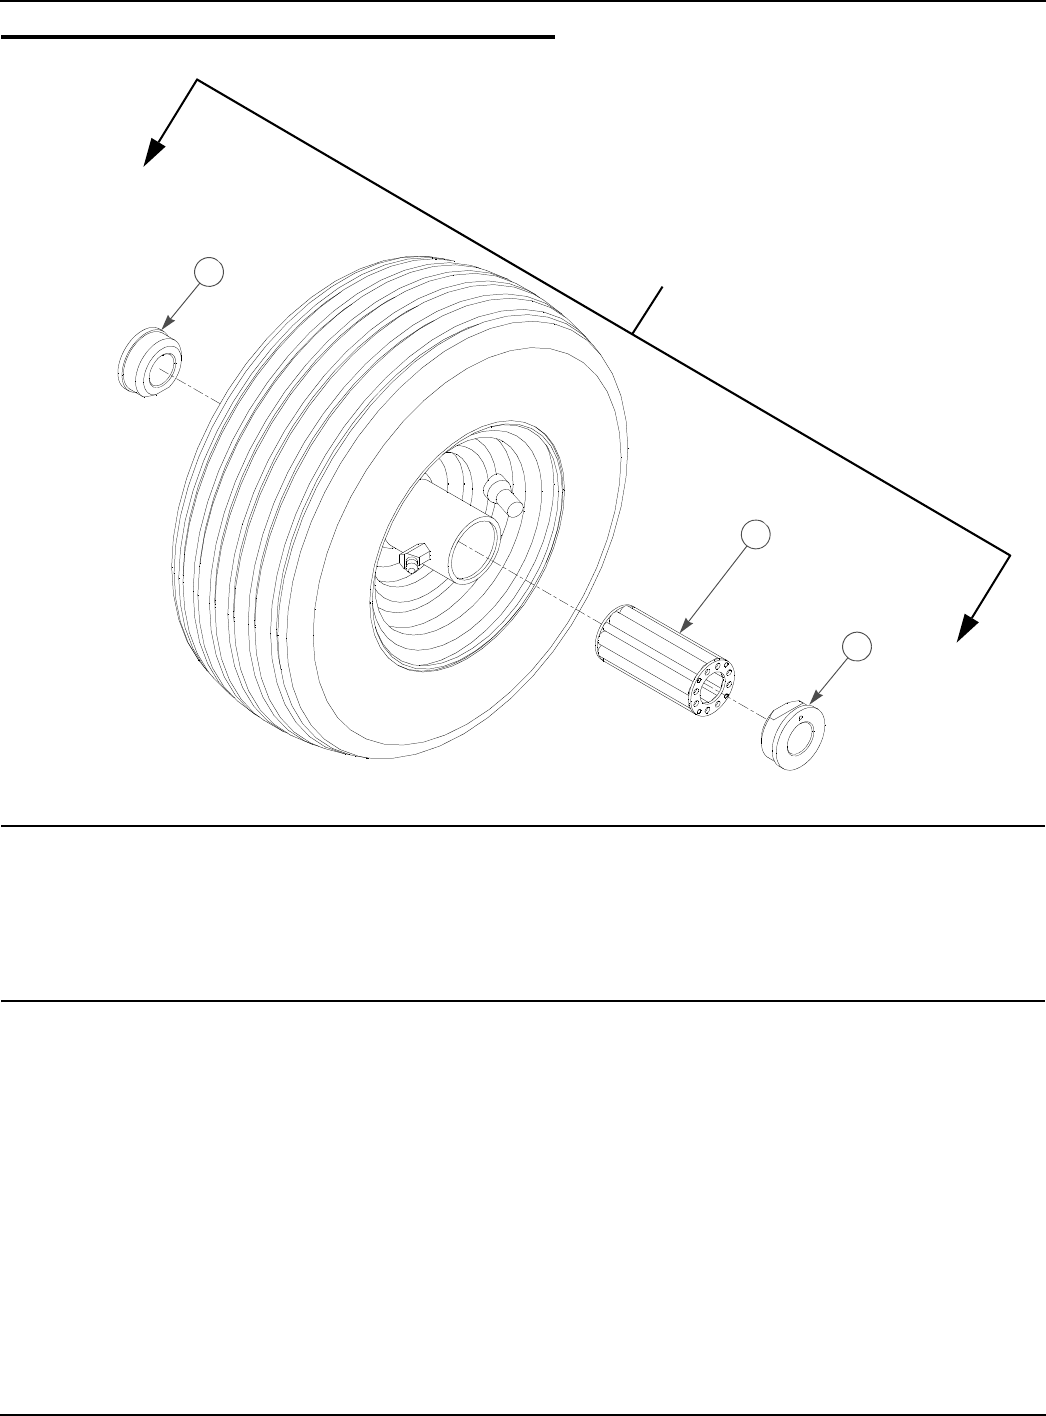 Page 43 of Hustler Turf Lawn Mower none User Guide